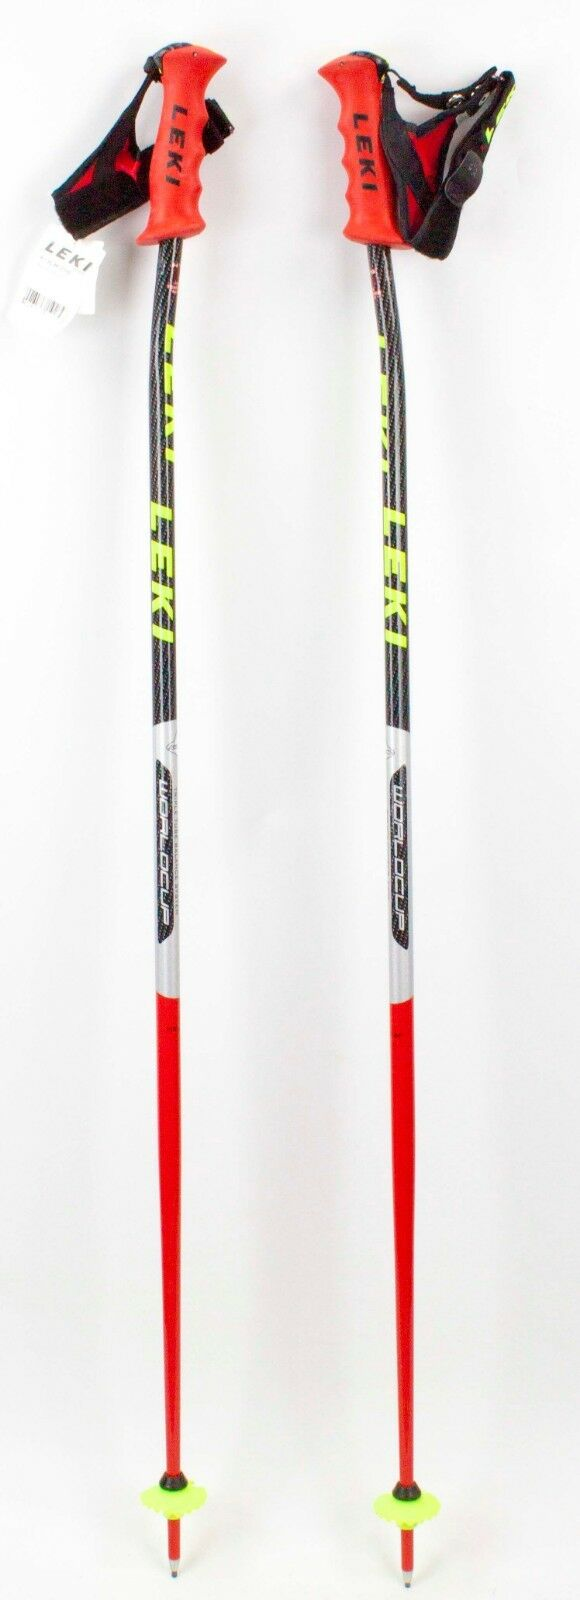 NEW  250 LEKI World Cup Racing  Ski Poles 110CM 44  Downhill Skiing Carbon  up to 60% off